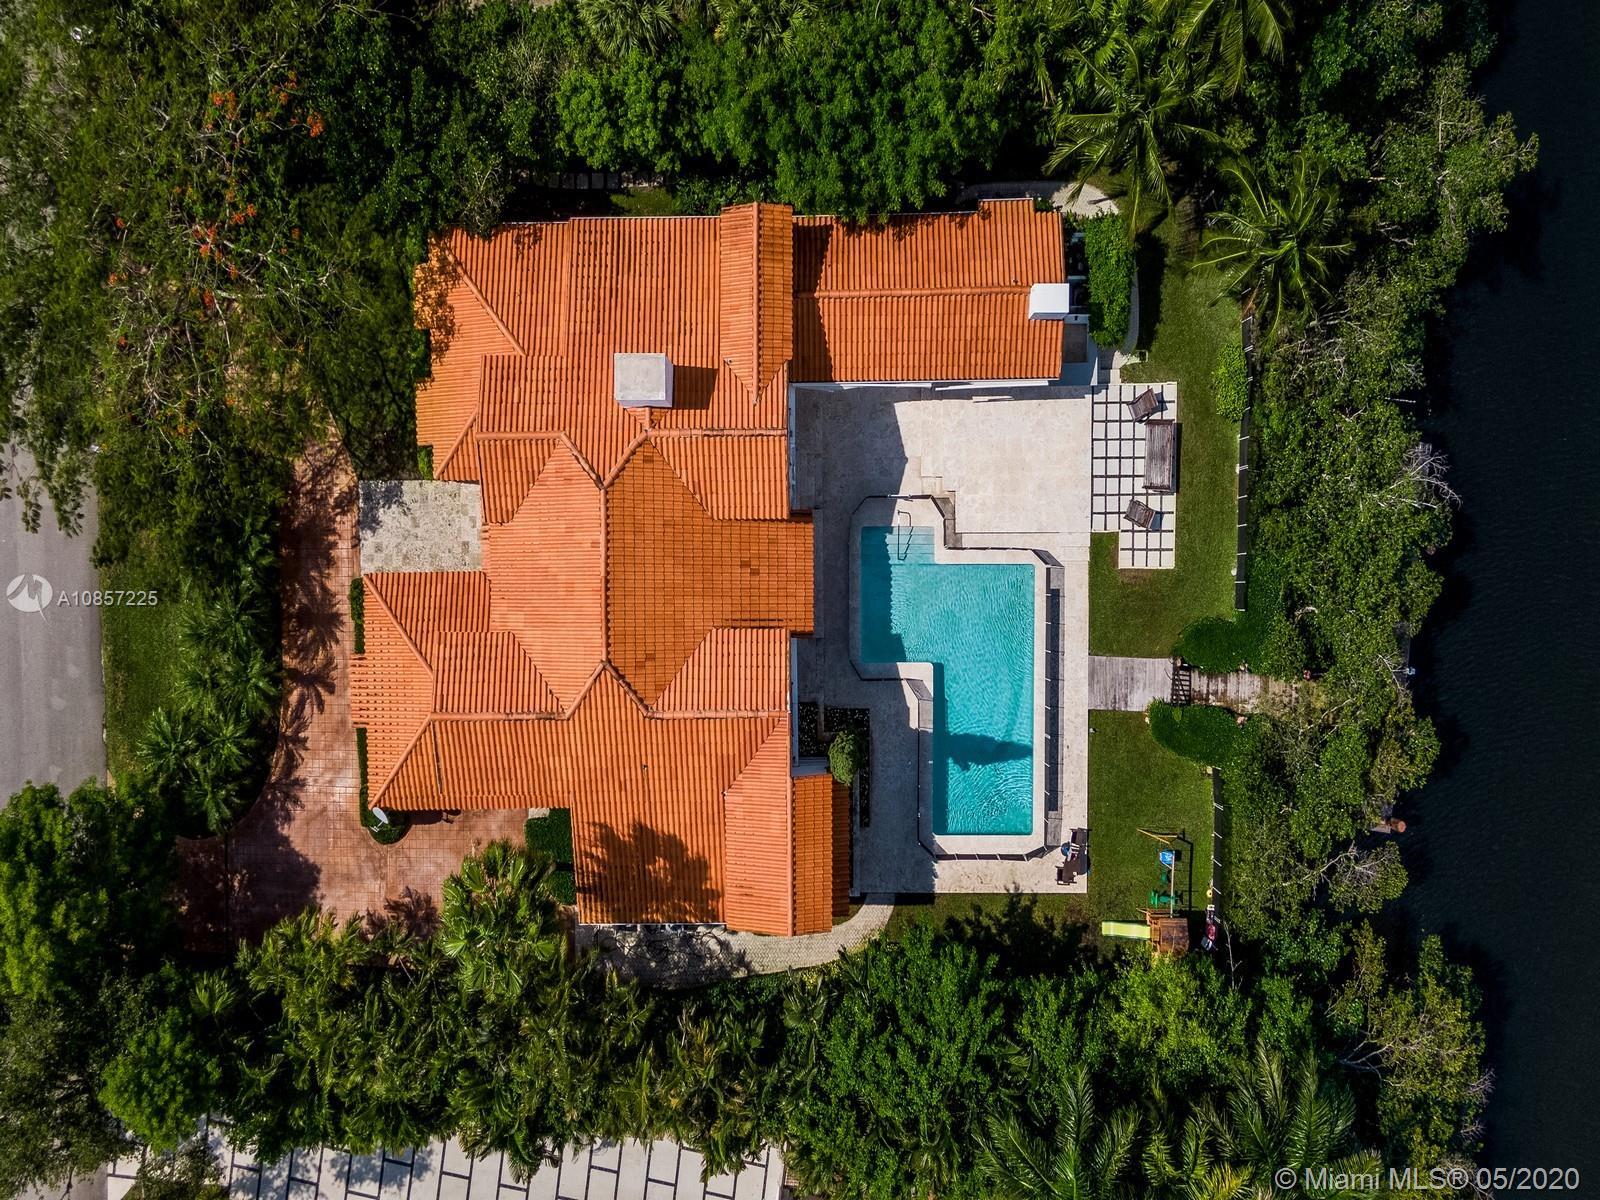 275 Costanera Rd, Coral Gables, Florida 33143, 5 Bedrooms Bedrooms, ,6 BathroomsBathrooms,Residential,For Sale,275 Costanera Rd,A10857225